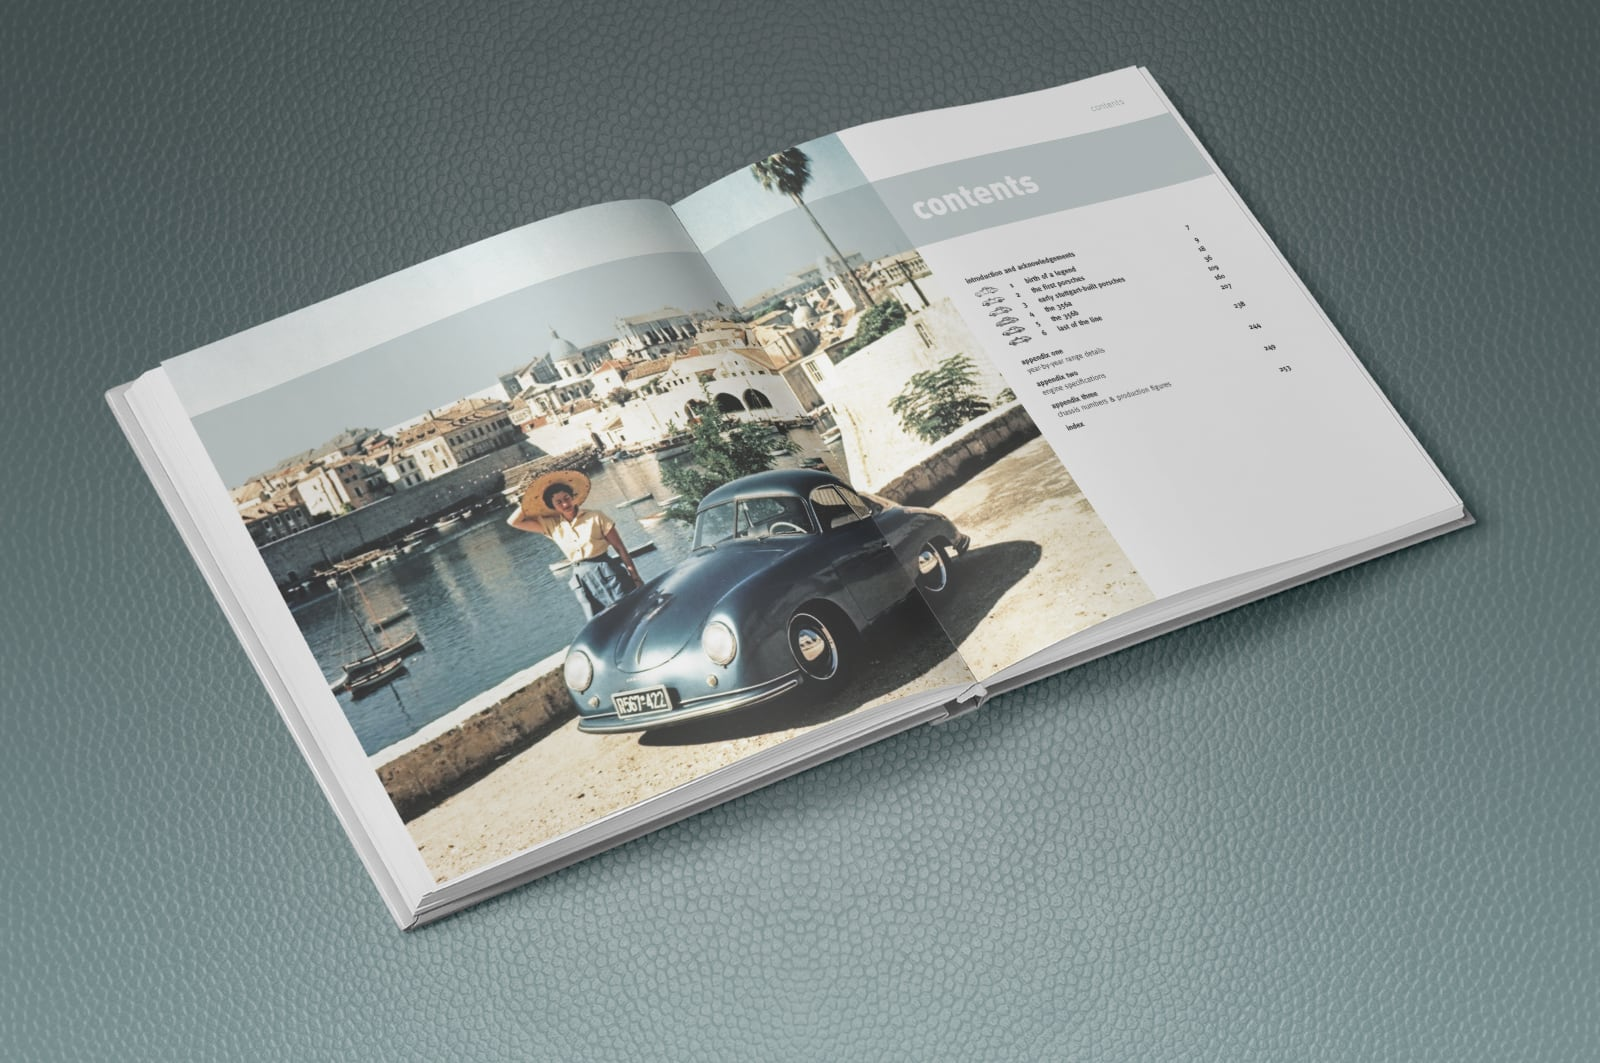 The Ultimate Book of the Porsche 356 spread sample